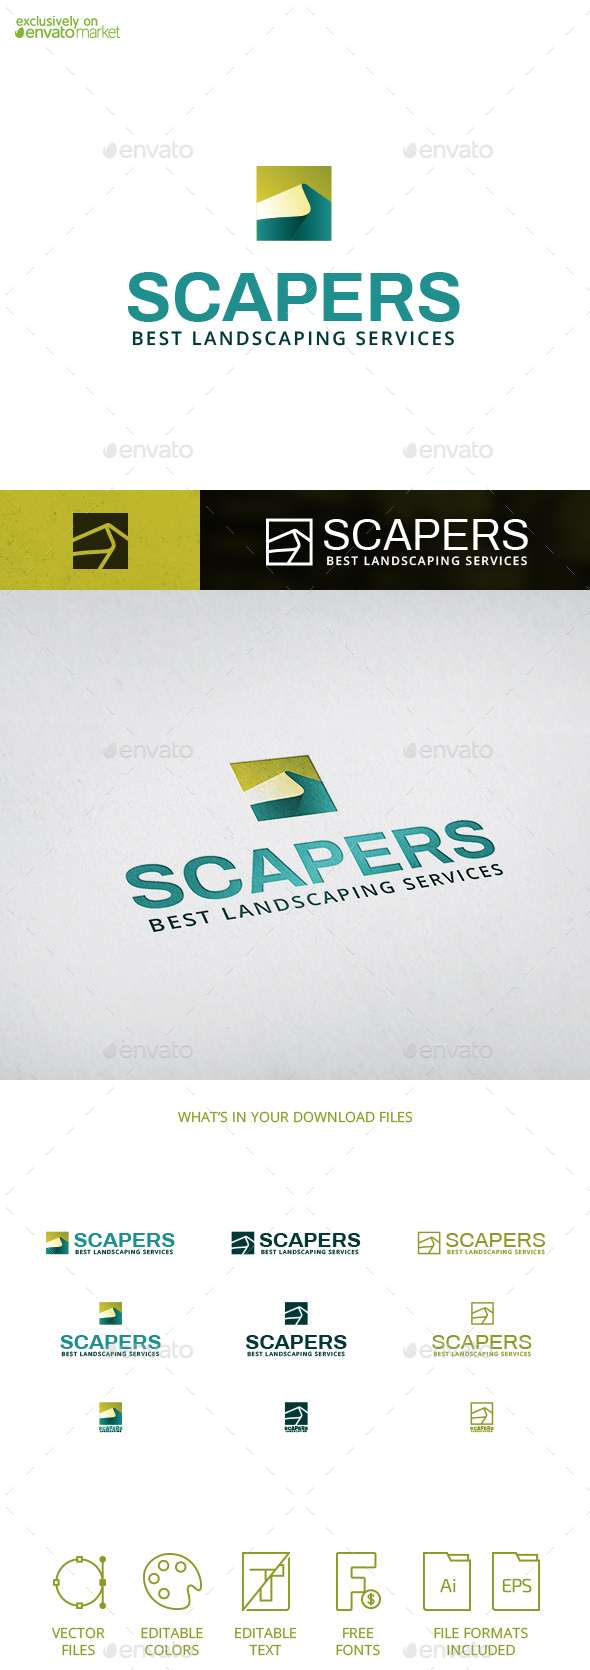 Scapers Landscaping Design Tourism Mountain Nature Logo